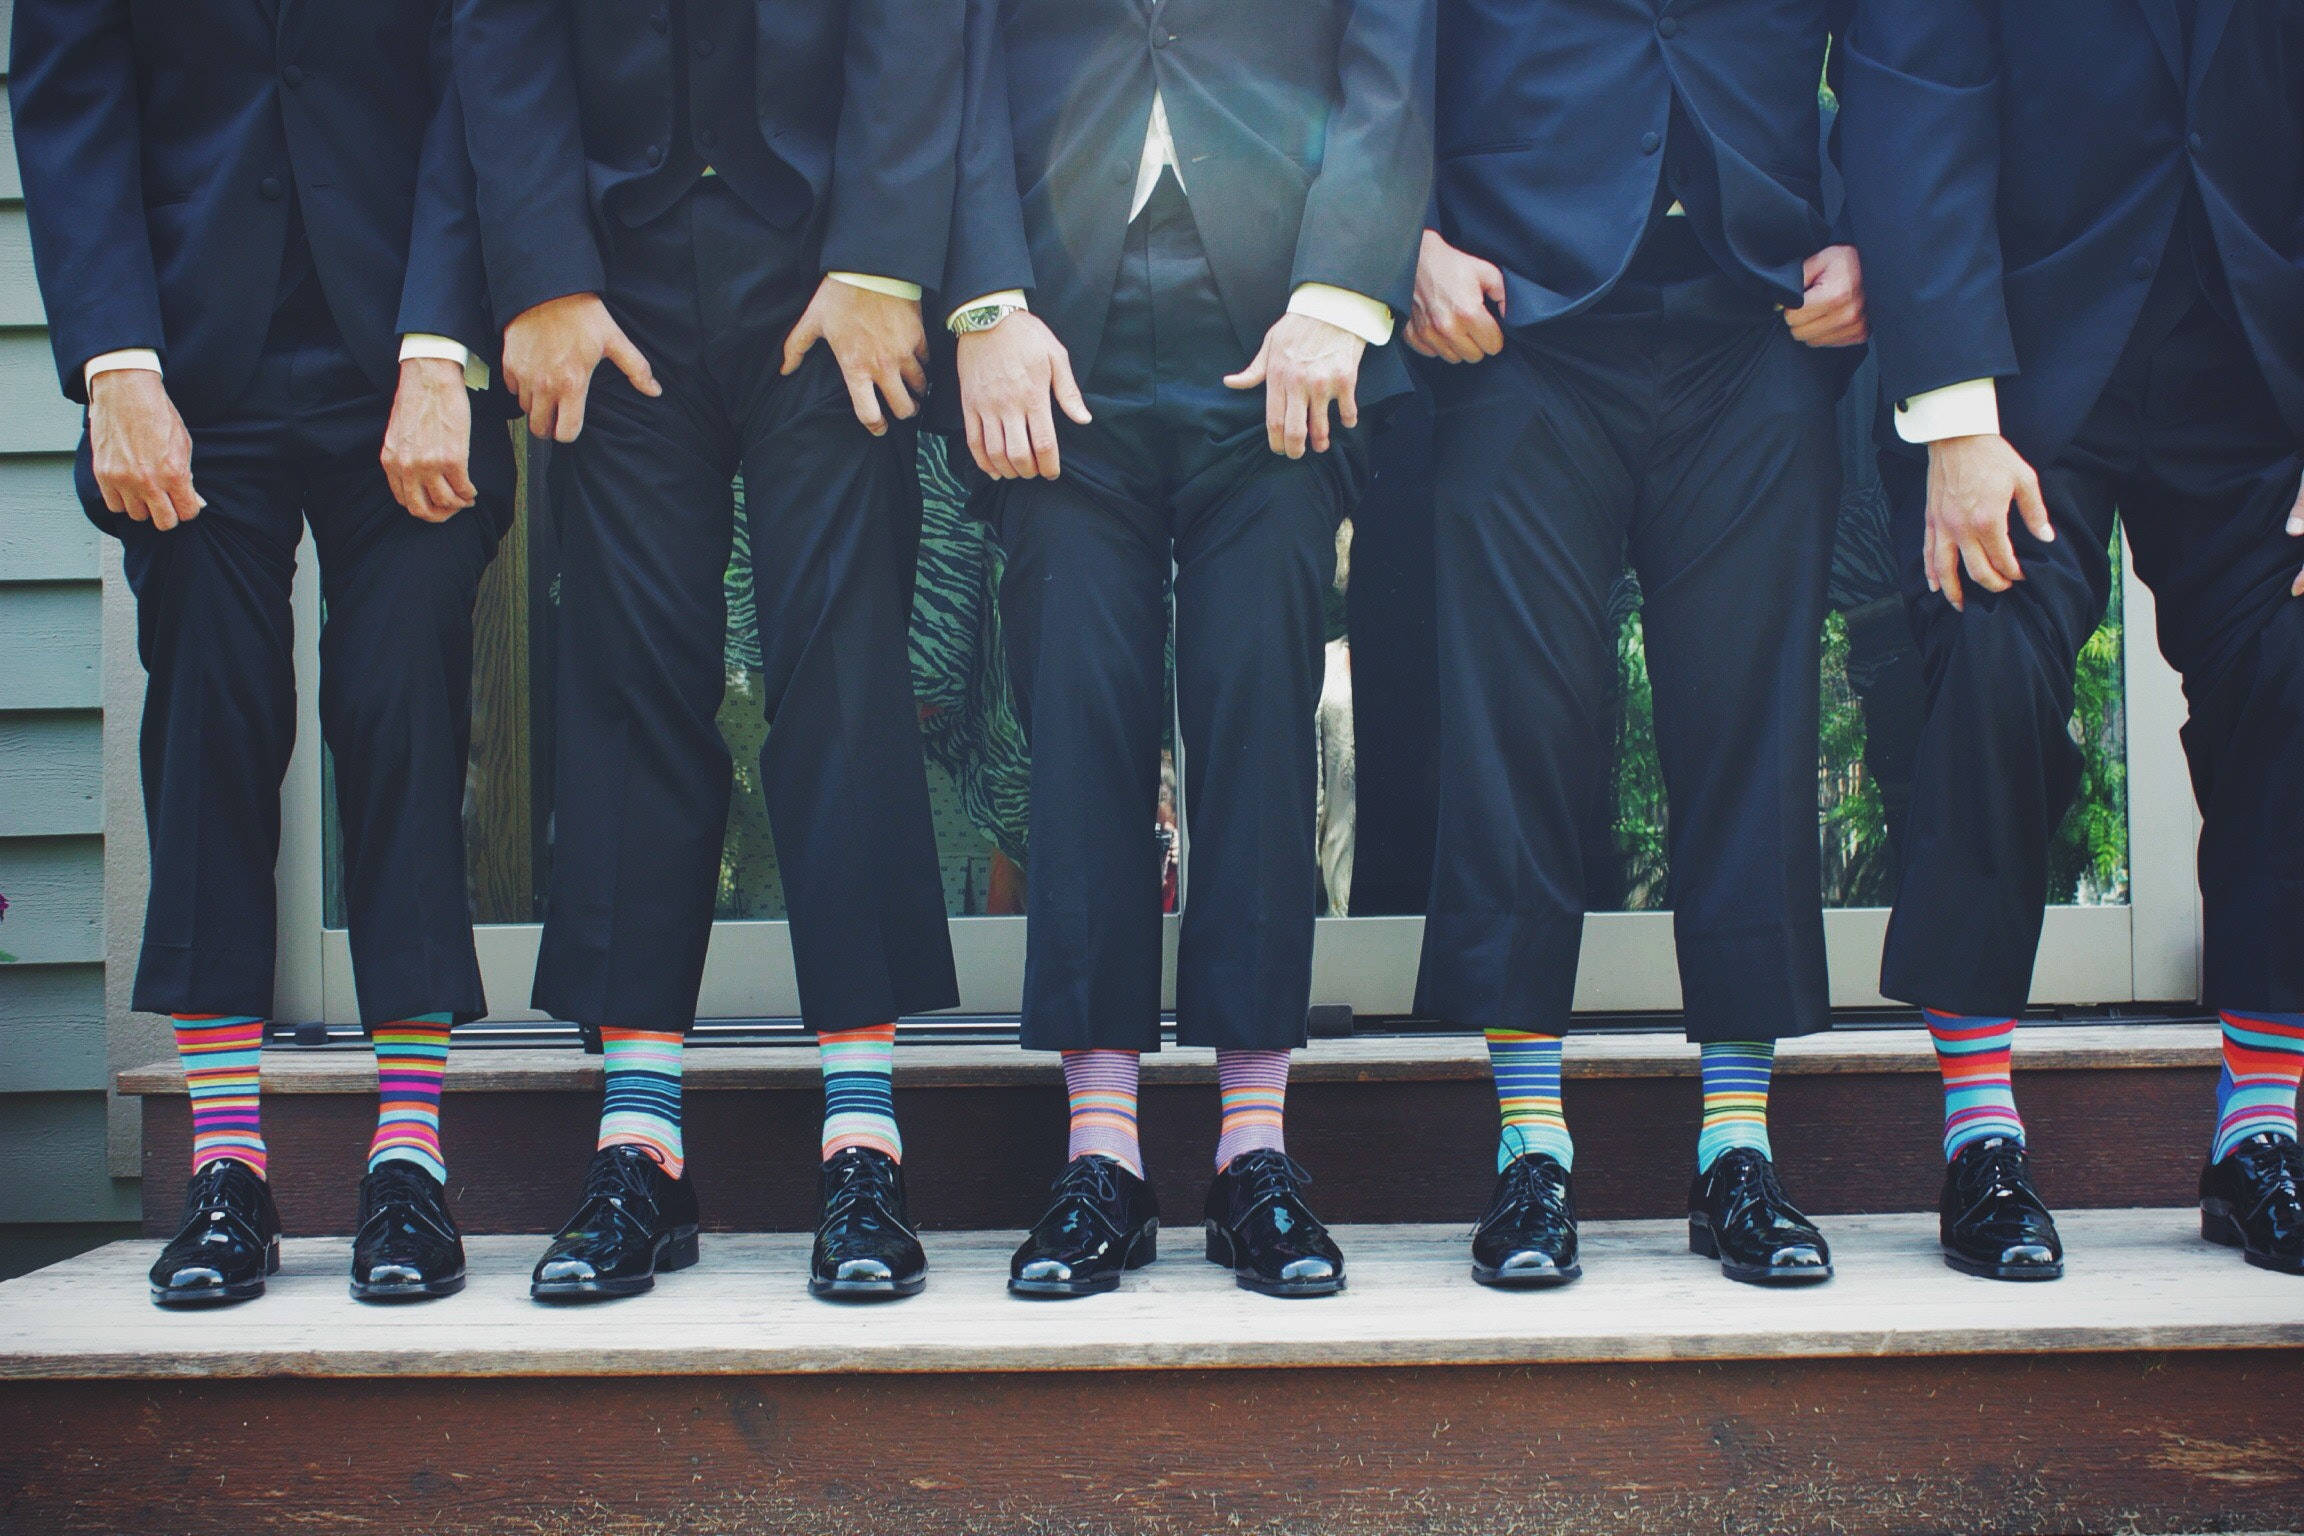 Your groomsmen duties may include wearing colorful socks.